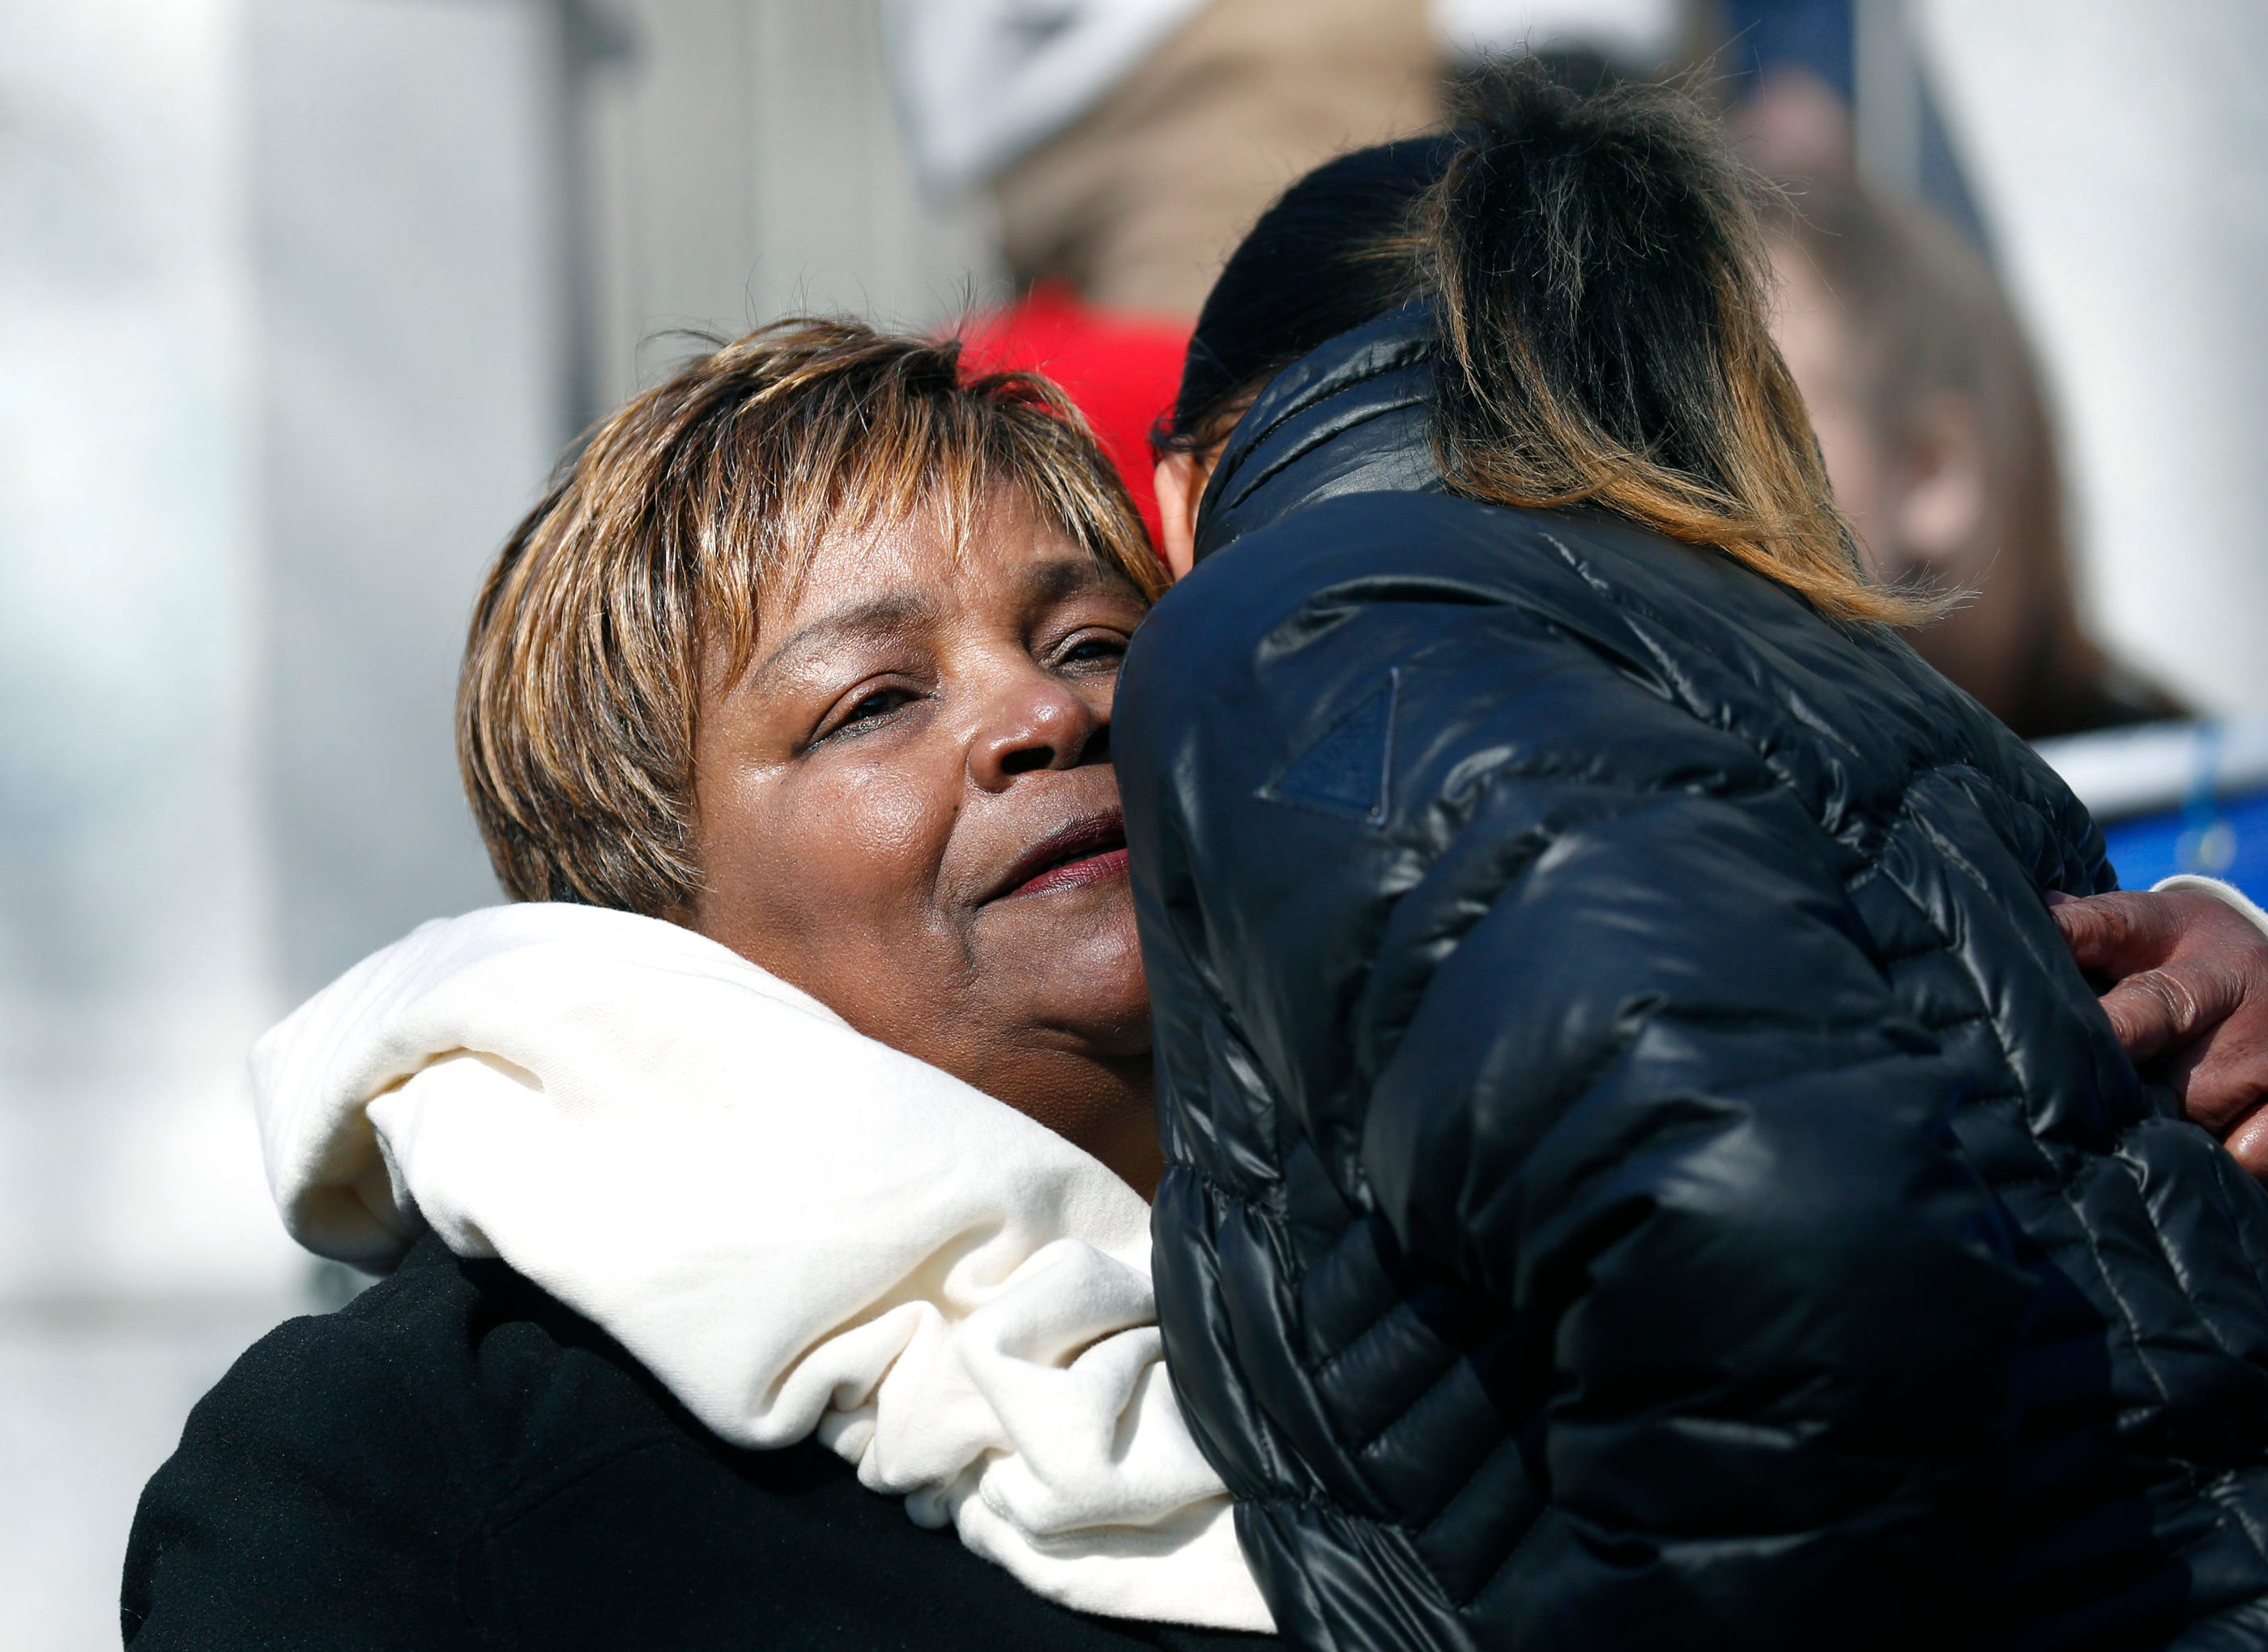 Lentory Johnson, whose son Johnny Ray Johnson was one of the victims in the triple homicide at the Boys & Girls Club of Rochester in 2015, gets a hug after her speech before the start of the Rochester March for Our Lives Rally starting at Washington Square Park in Rochester, New York. (Via OlyDrop)